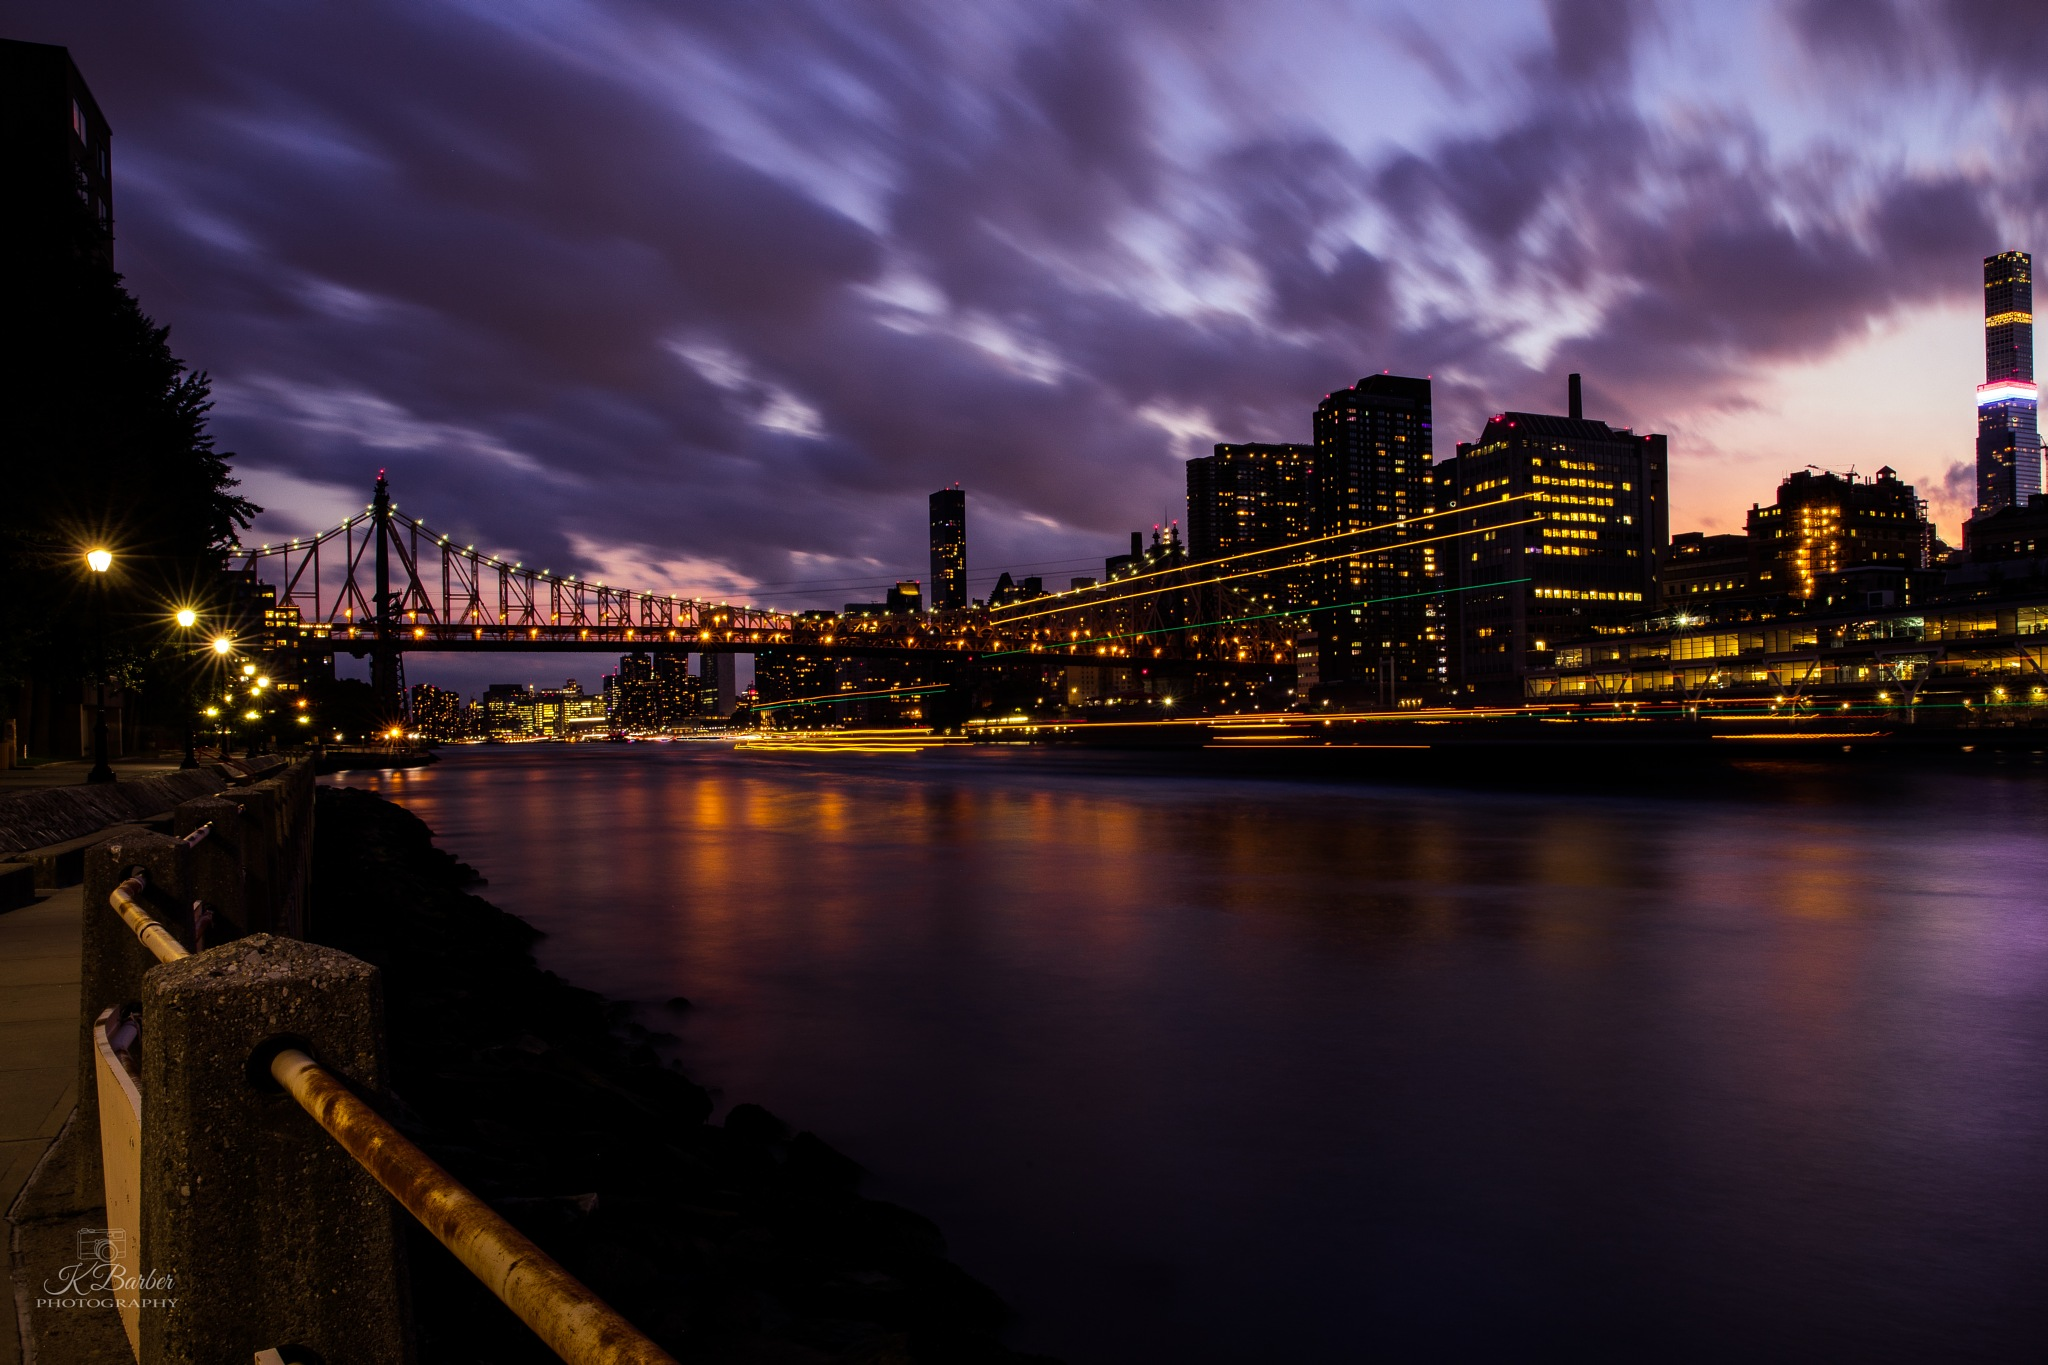 Roosevelt Island at Sunset by Katy Beth Barber